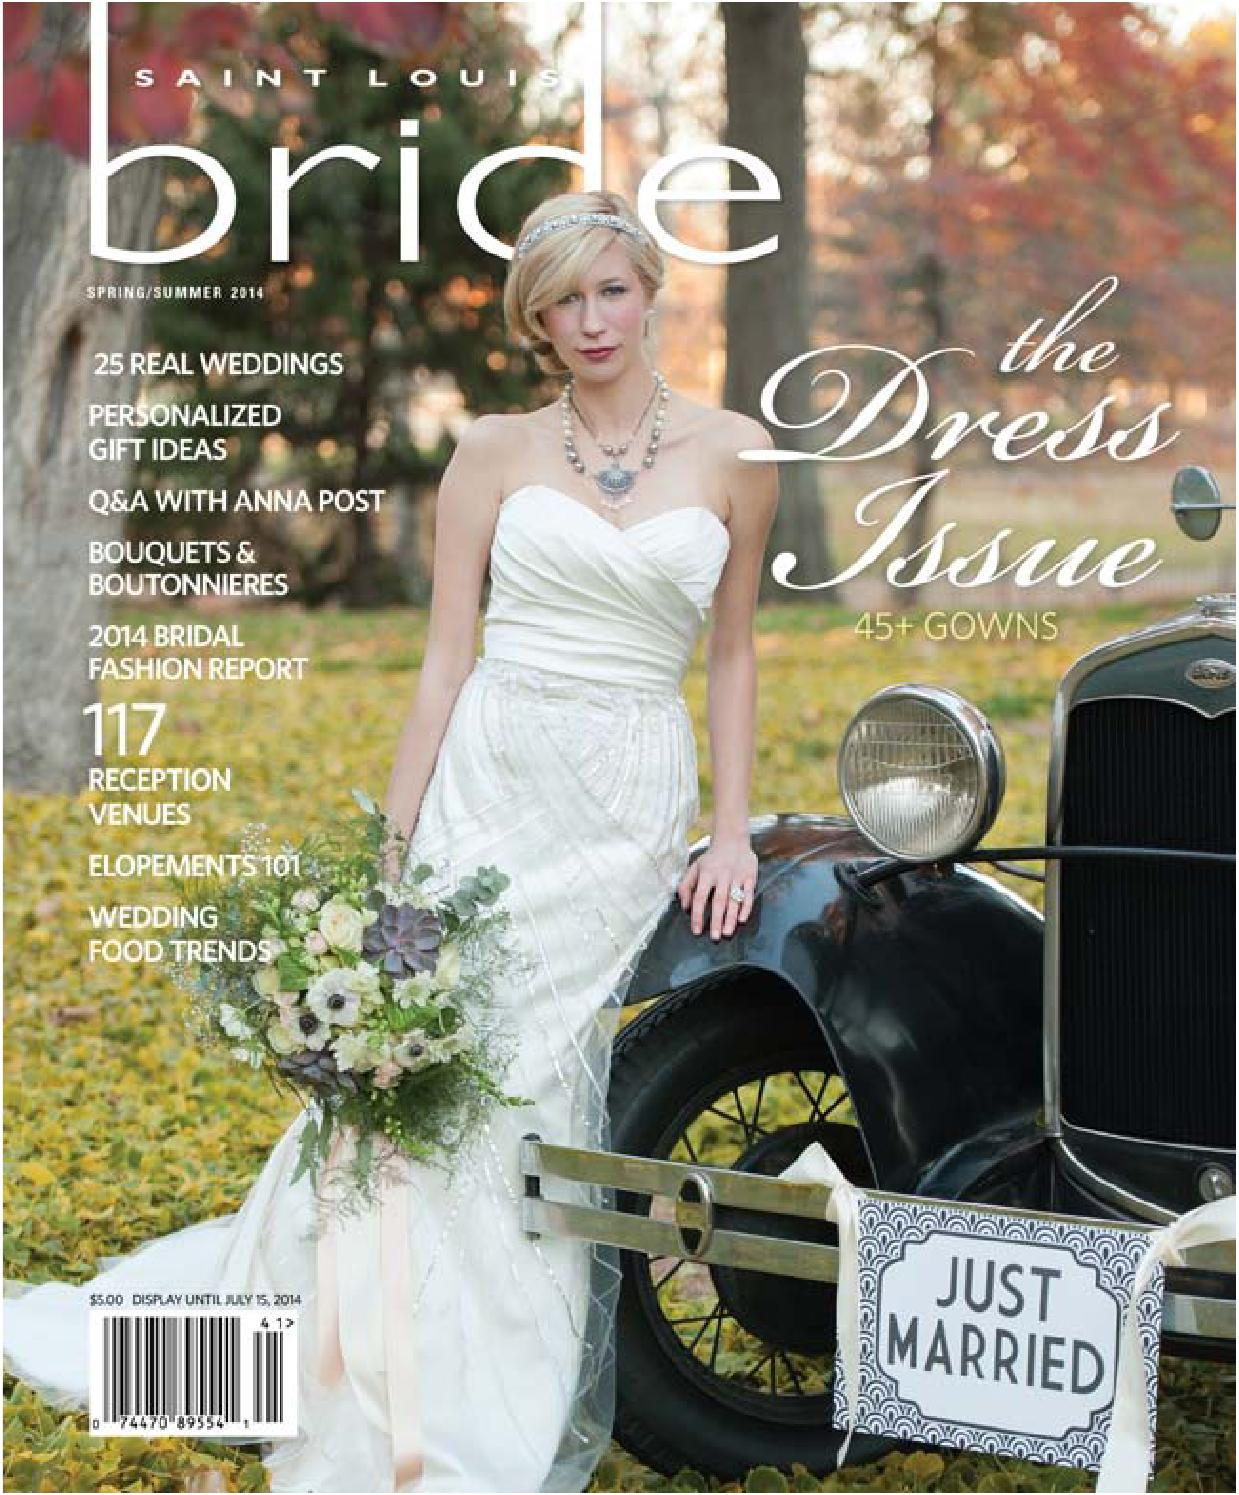 1bc6cfc889c St. Louis Bride Spring Summer 2014 by Morris Media Network - issuu